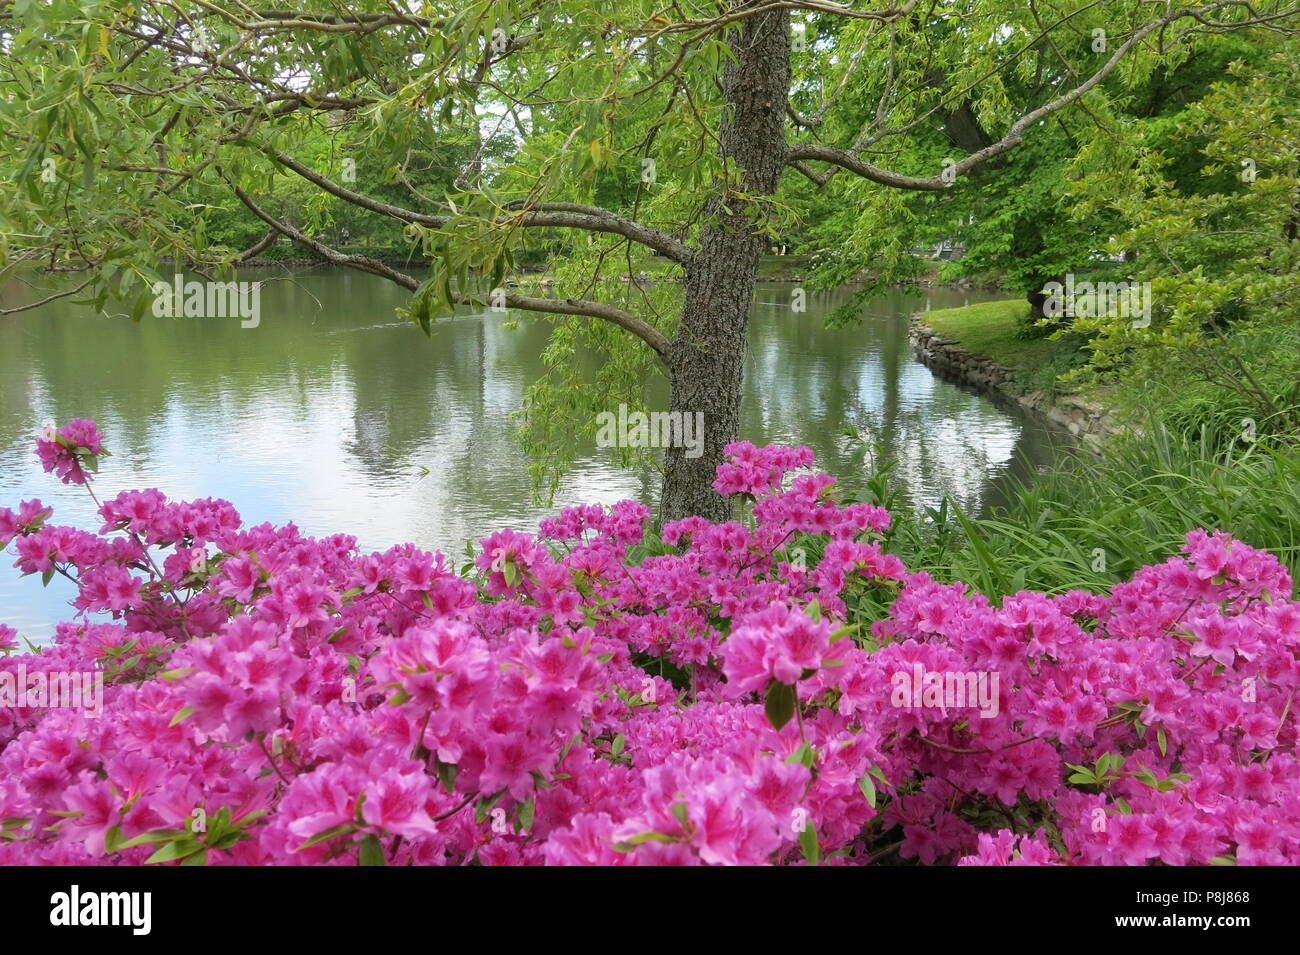 Victorian Pond Stock Photos & Victorian Pond Stock Images - Alamy